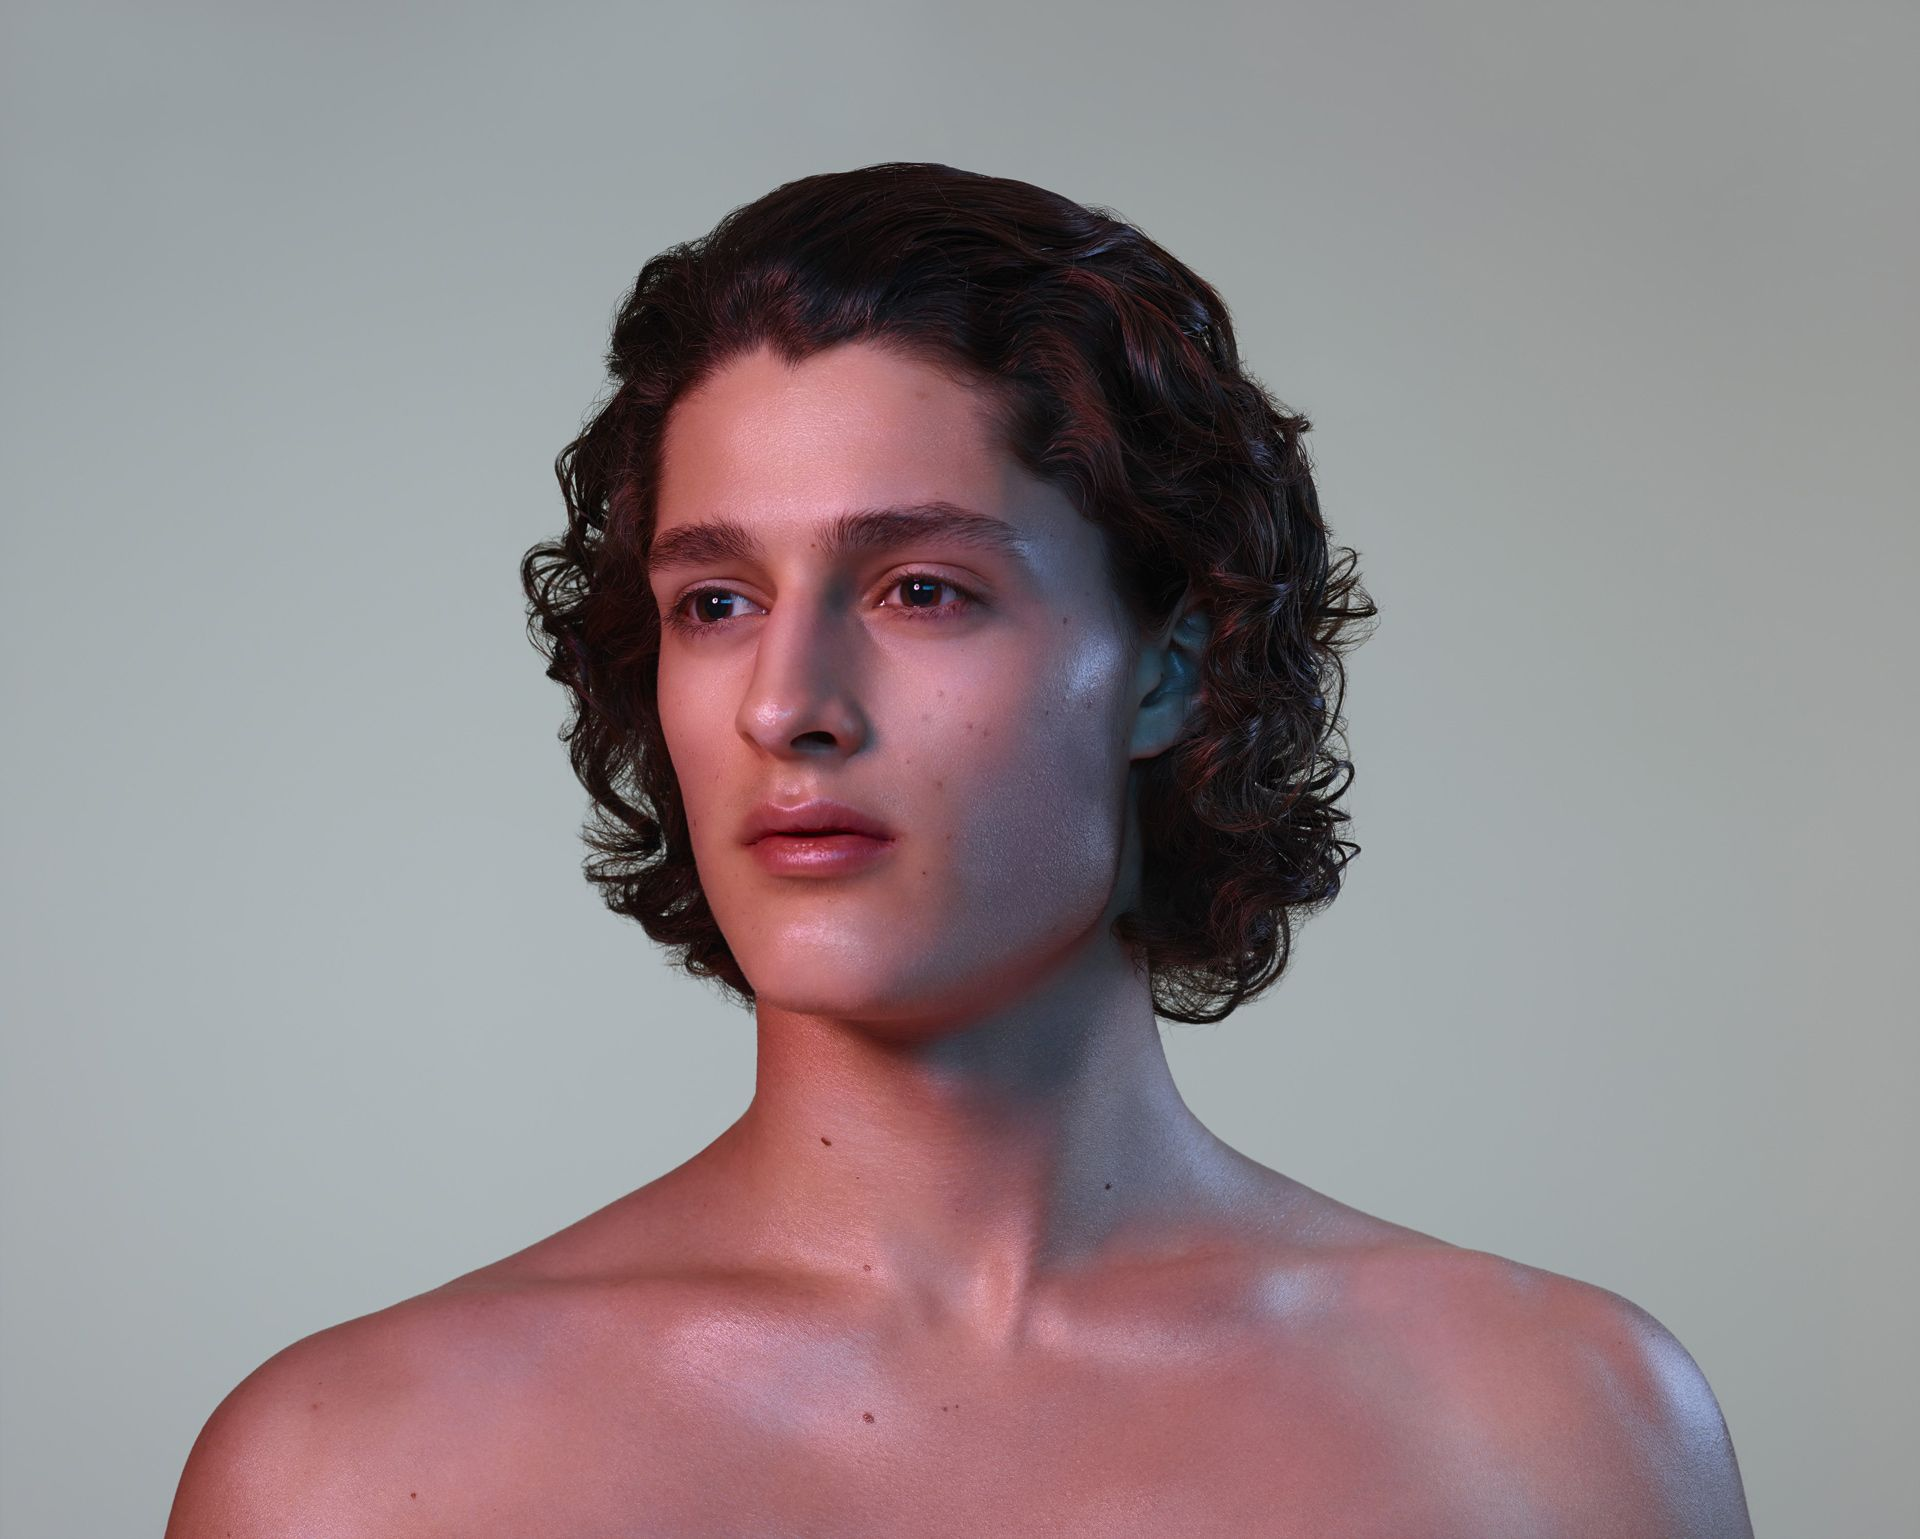 caucasian man well groomed brown curly hair looking away from camera in warm coloured lights on light pink background by Simon Duhamel for Skintone